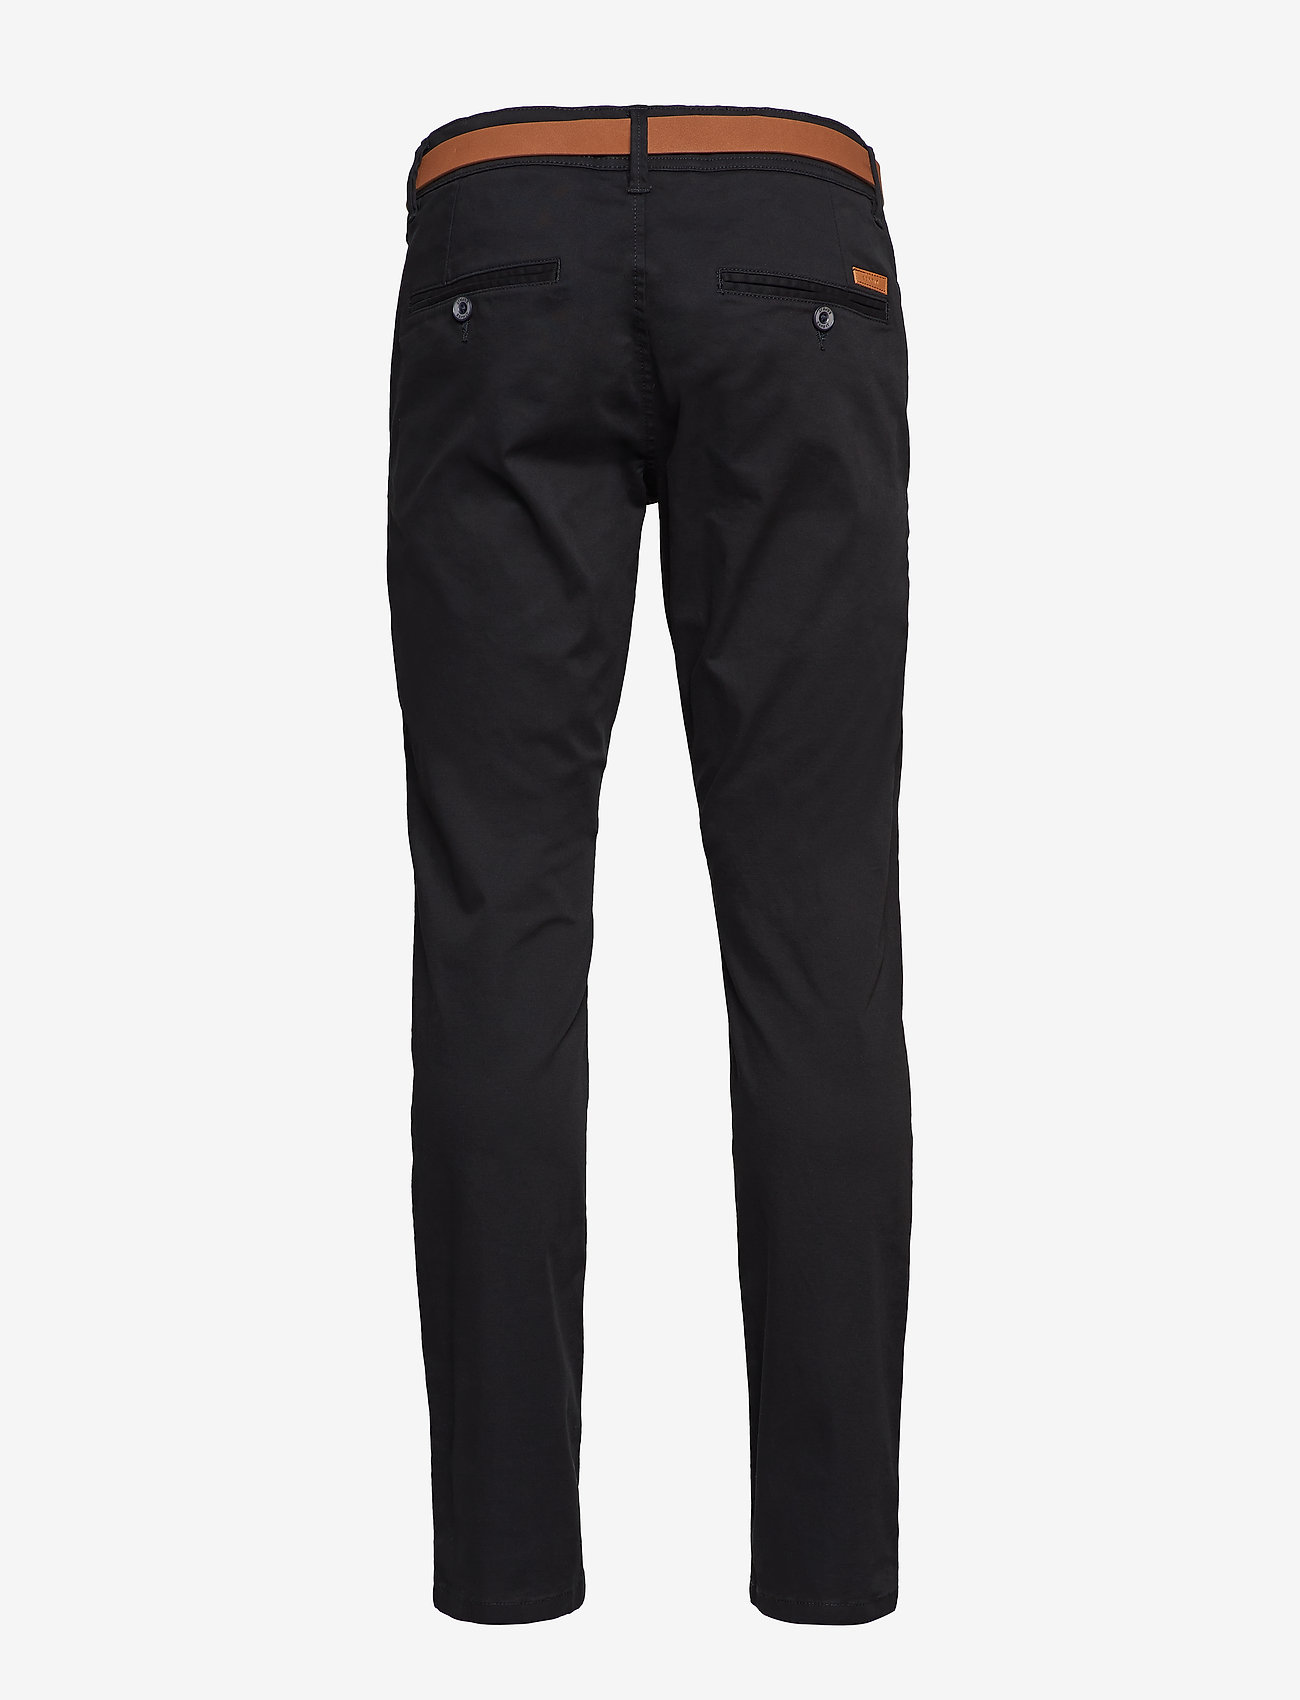 Esprit Casual - Pants woven - chino's - black - 1